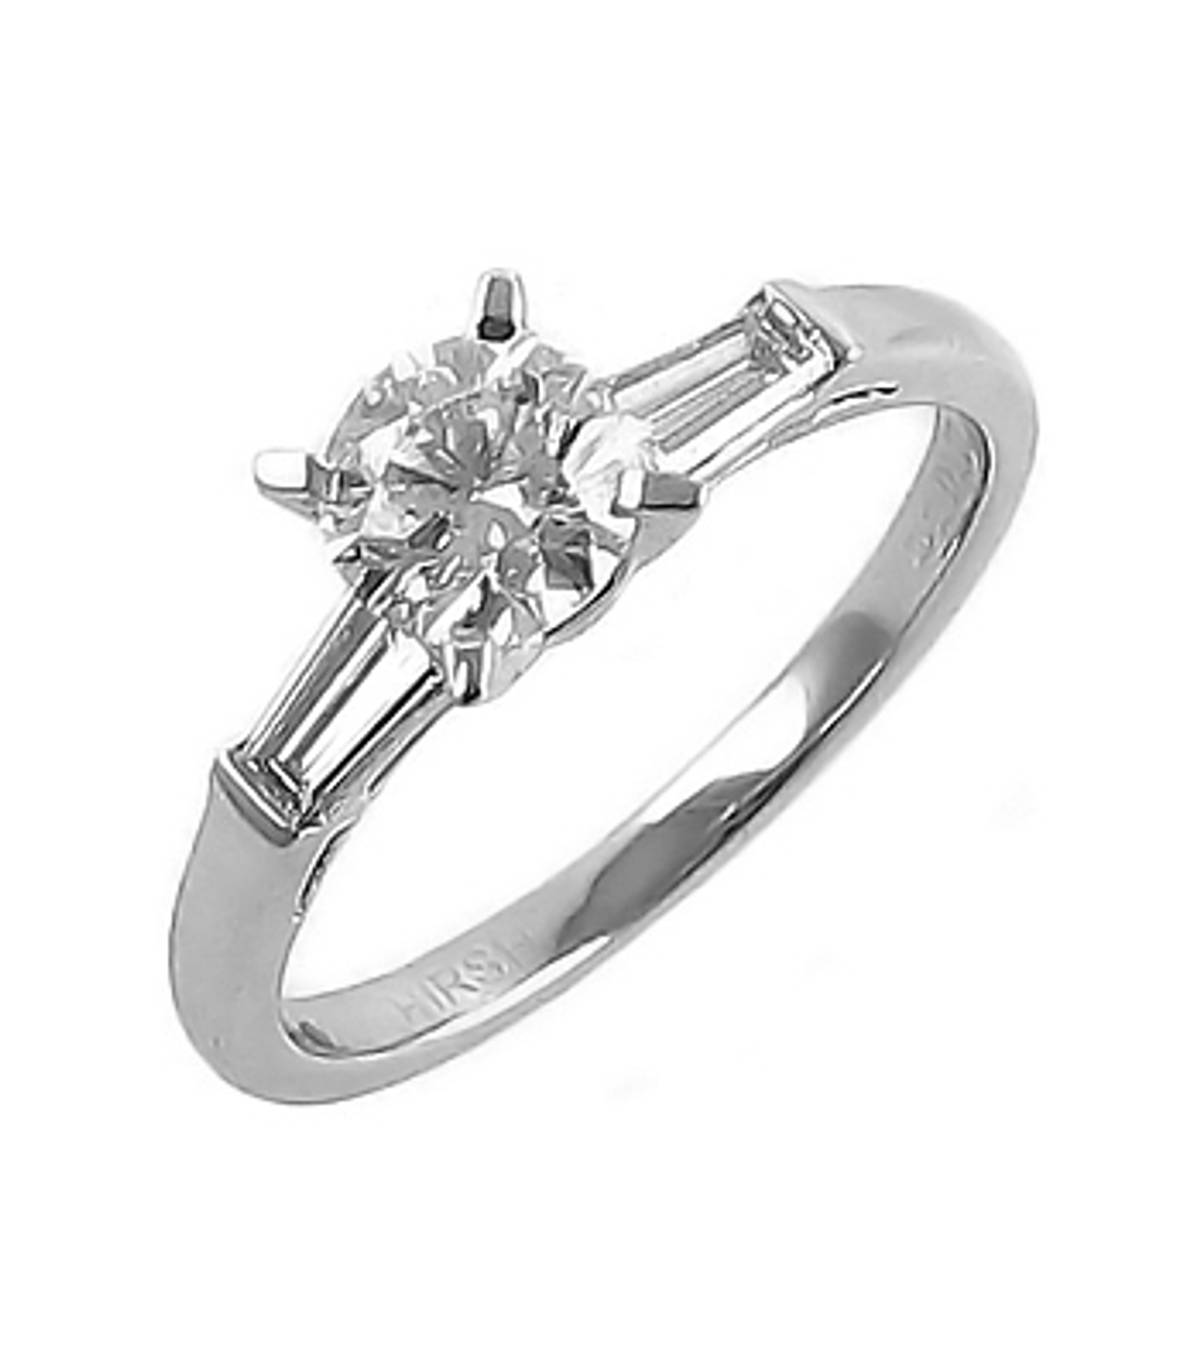 Irish made brilliant cut diamond solitaire engagement ring with baguette diamond shoulders with 0.66 carat brilliant cut centre diamond with 0.14 carat baguette cut diamonds in shoulders set in platinum